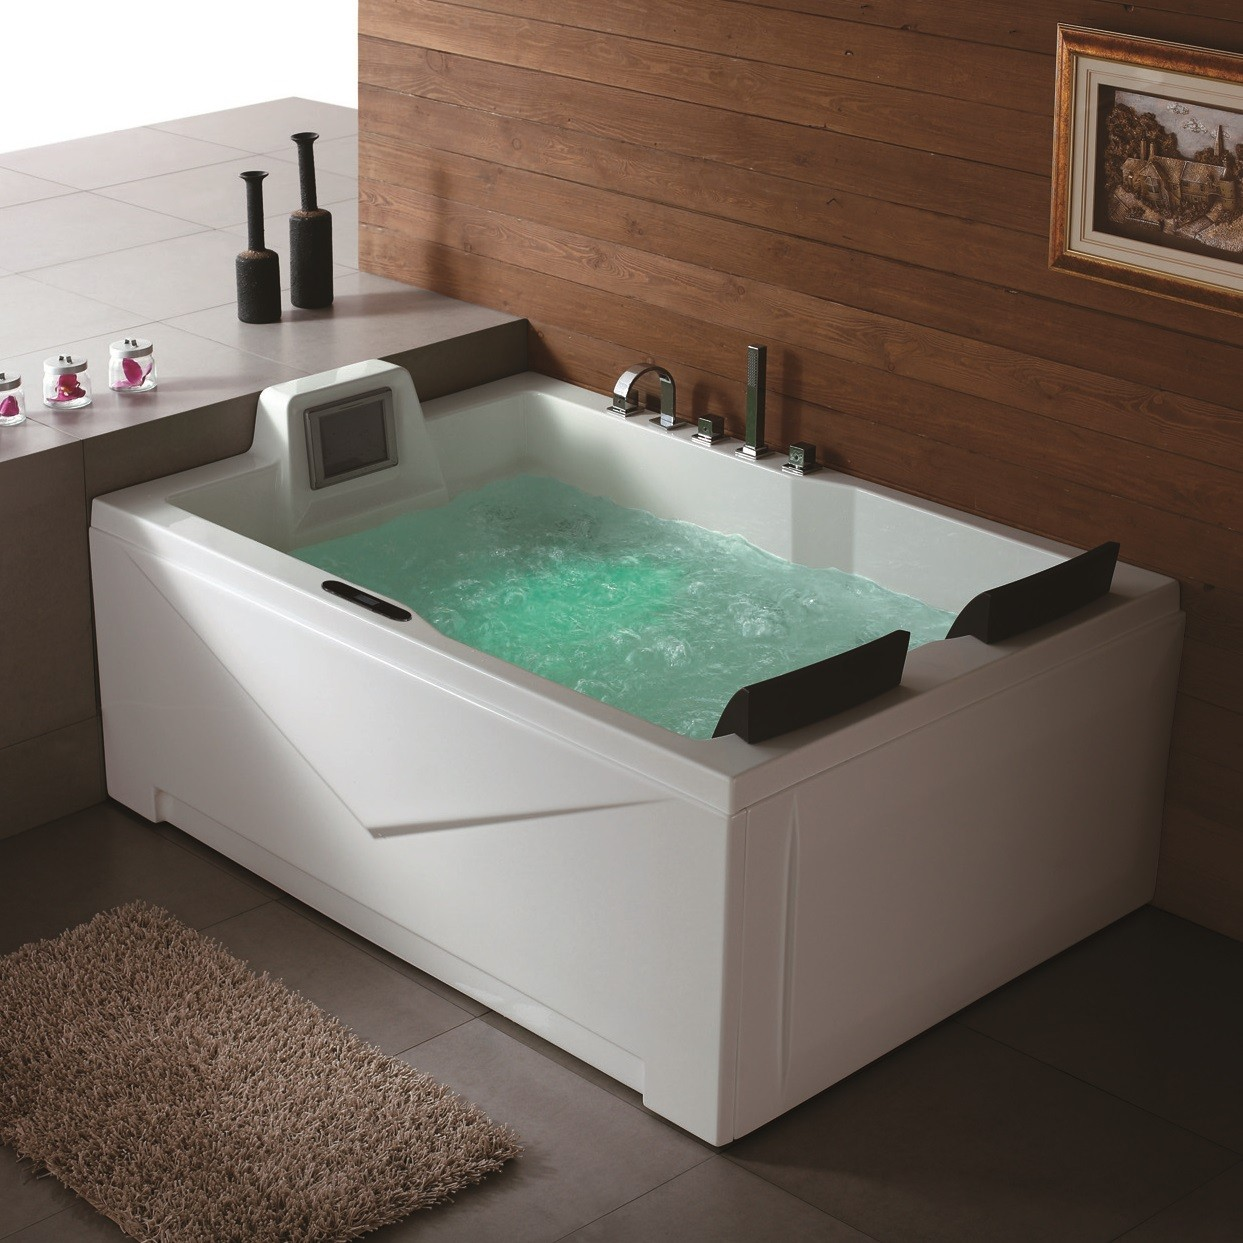 Putnam Luxury Massage Tub